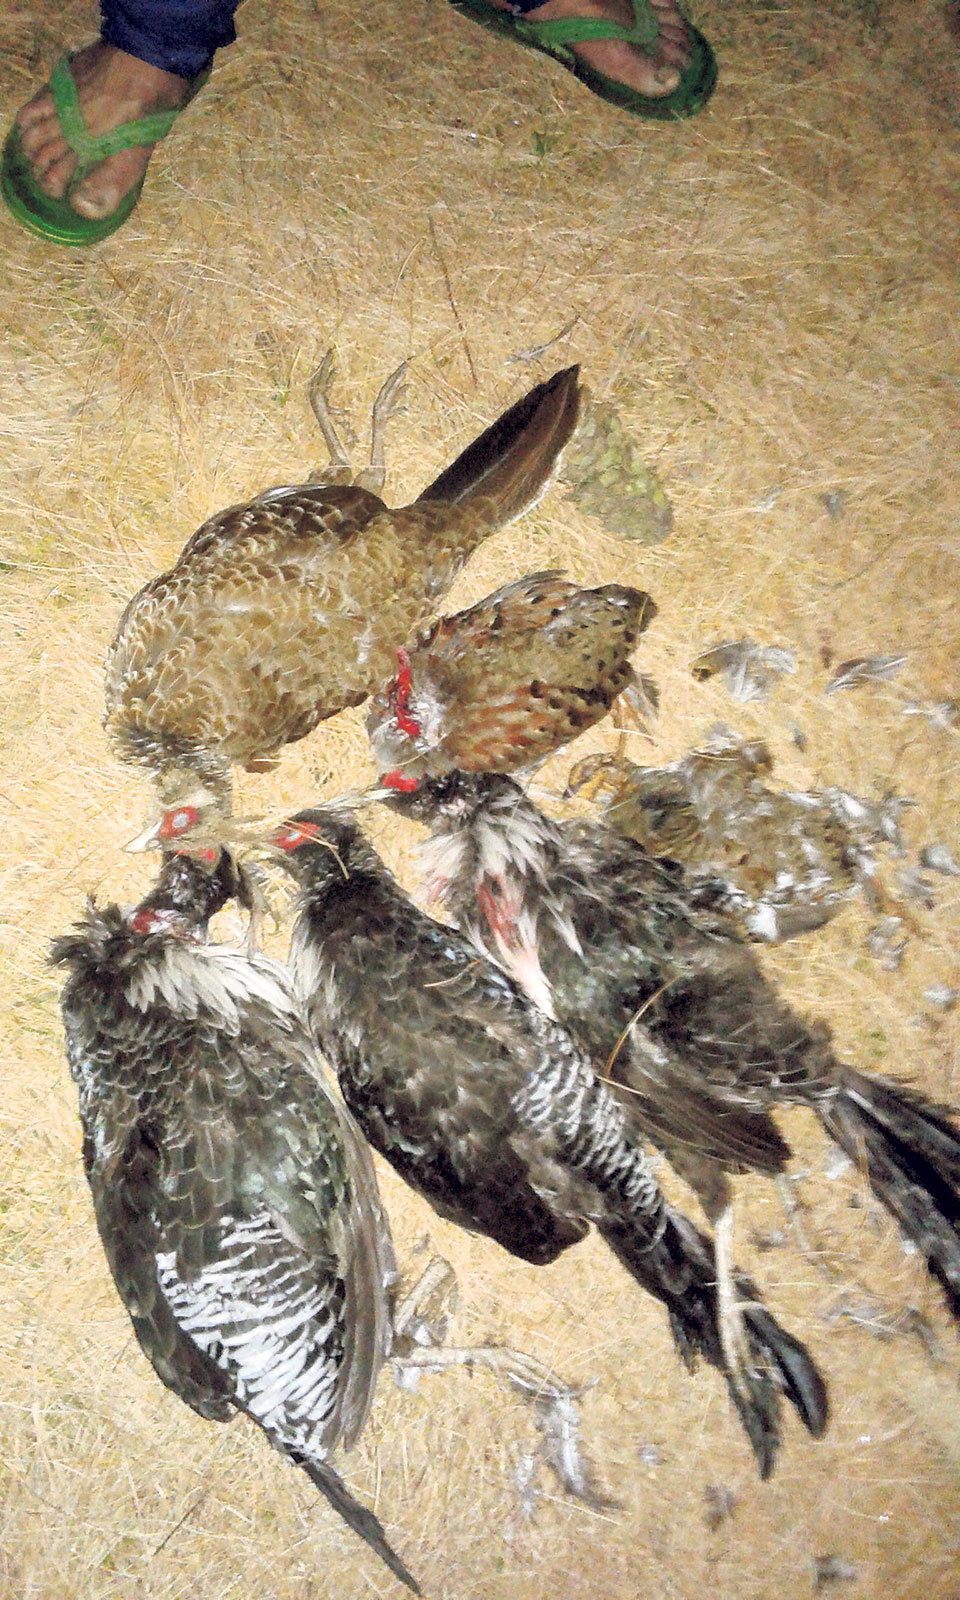 Wildlife meat openly bought and sold in Bajhang